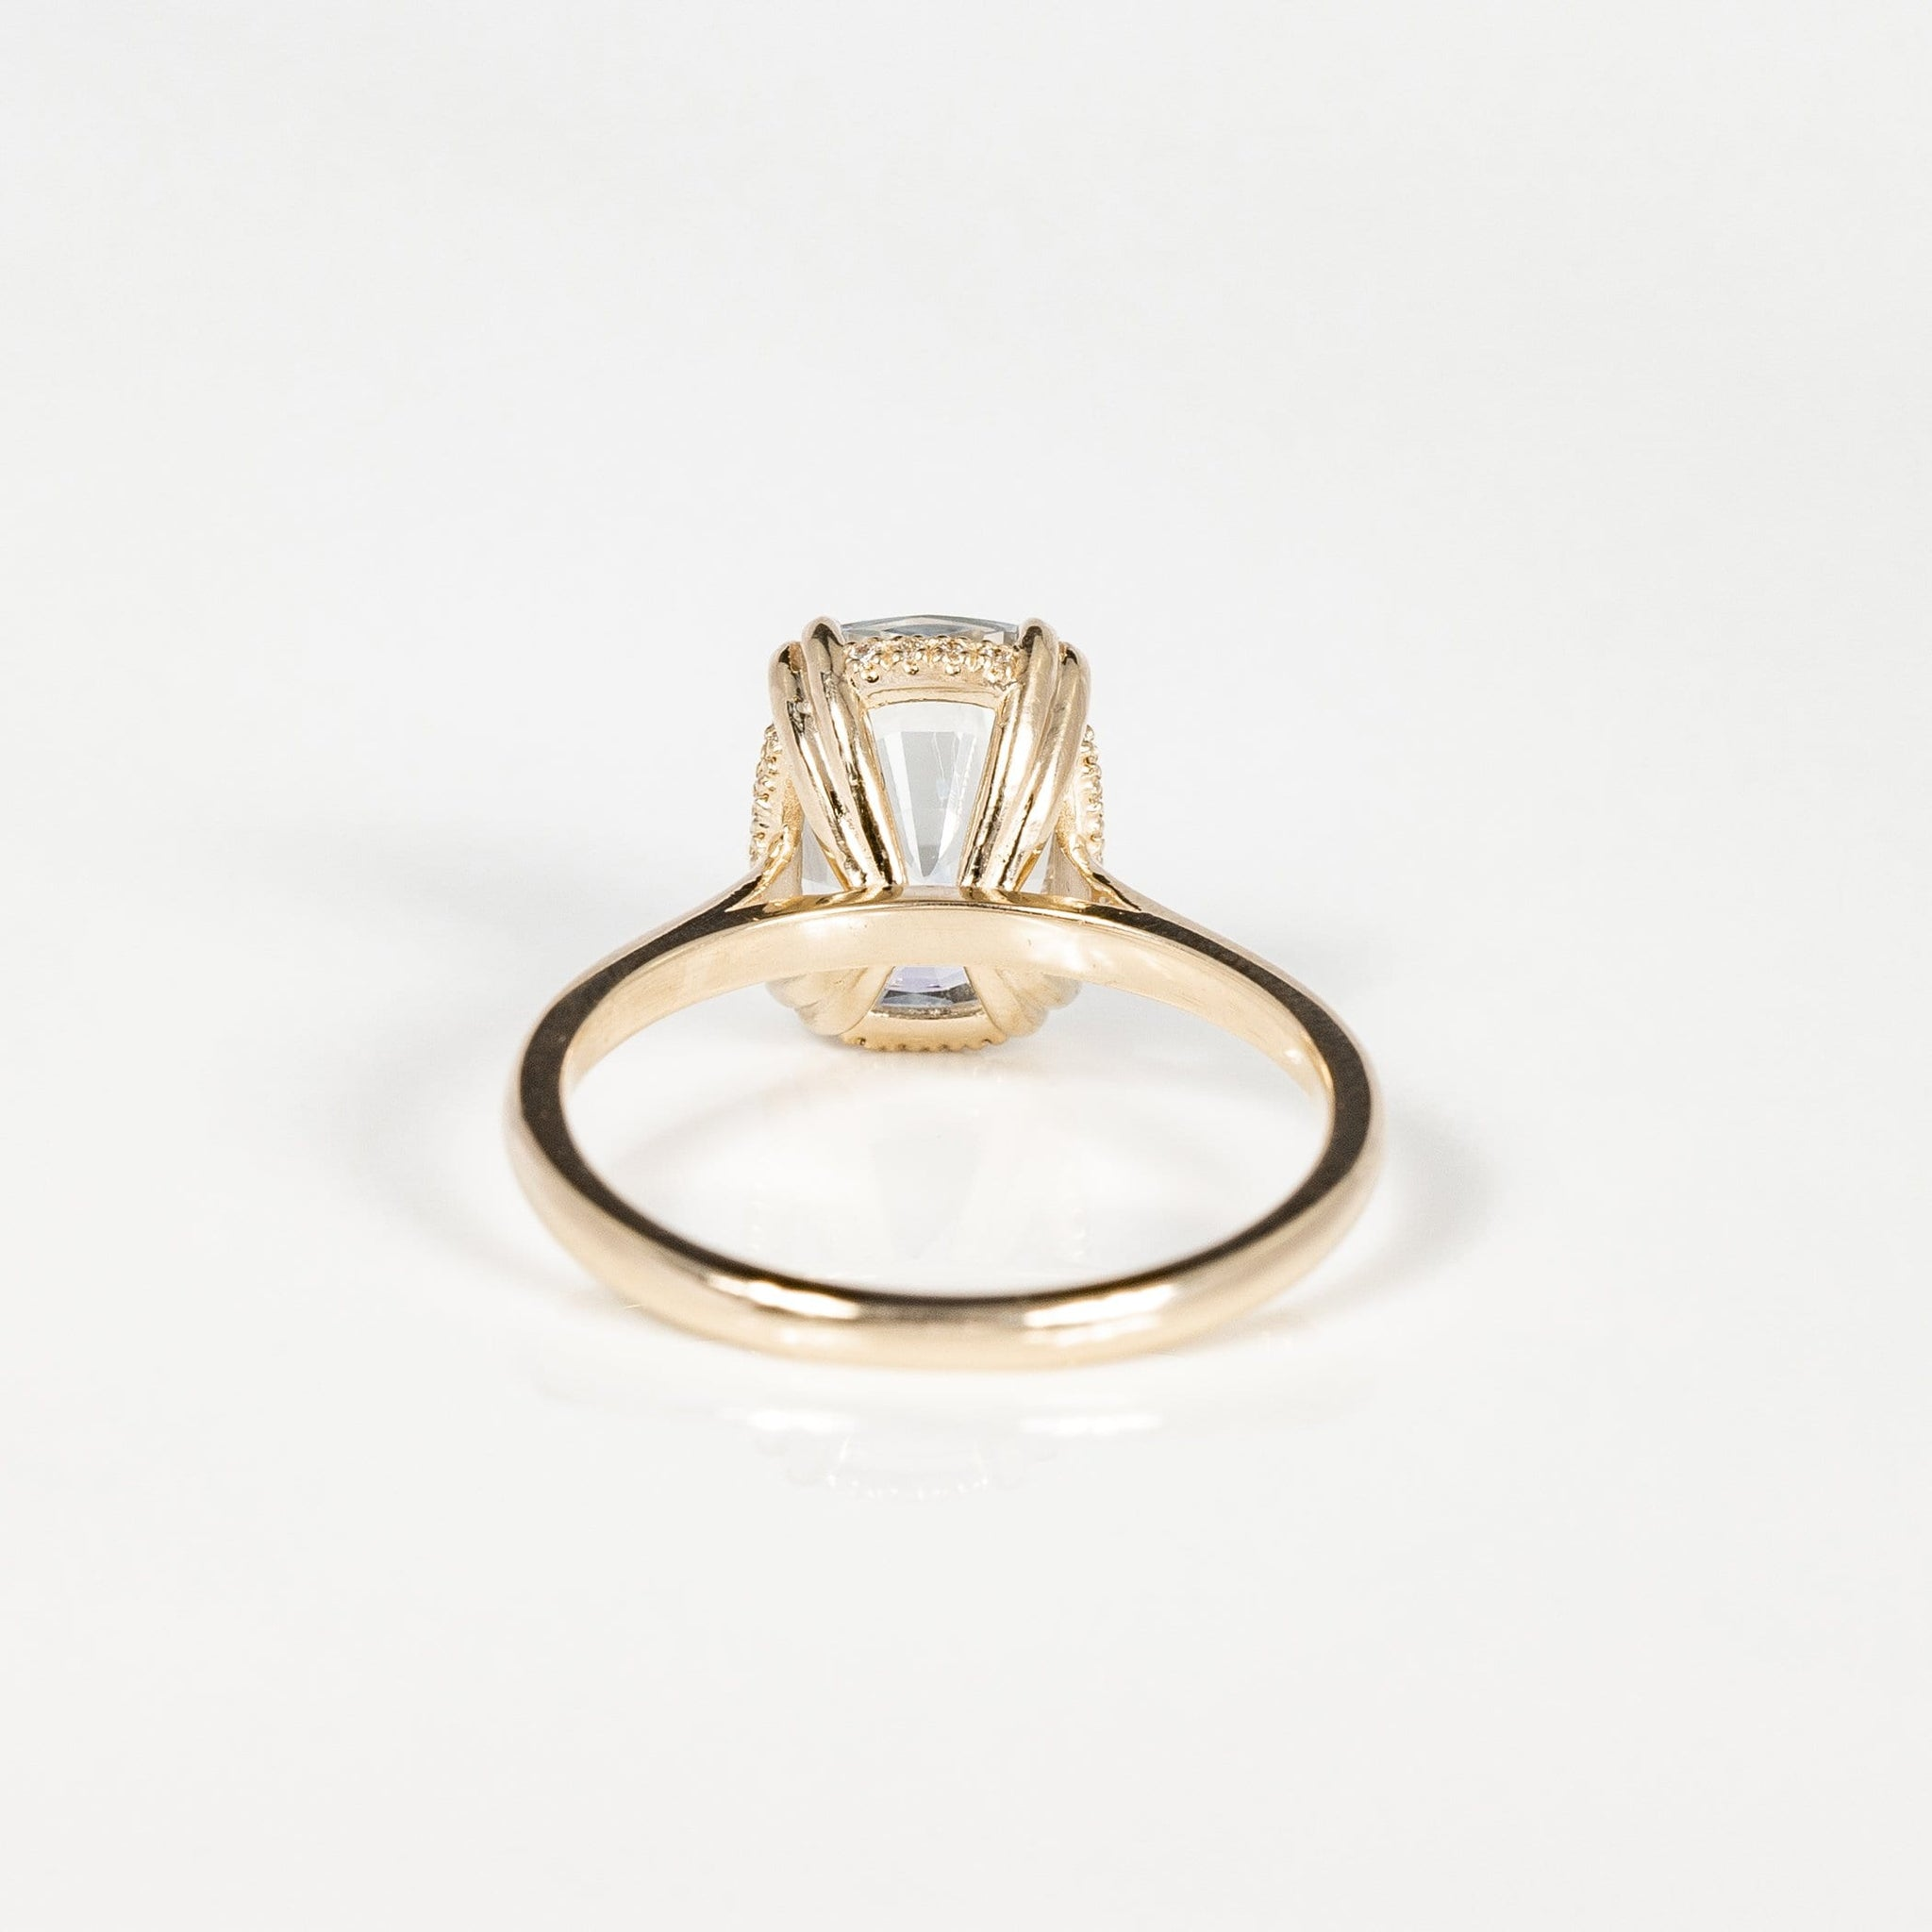 One of A Kind Sanibel Ring - 14k Yellow Gold, White Sapphire